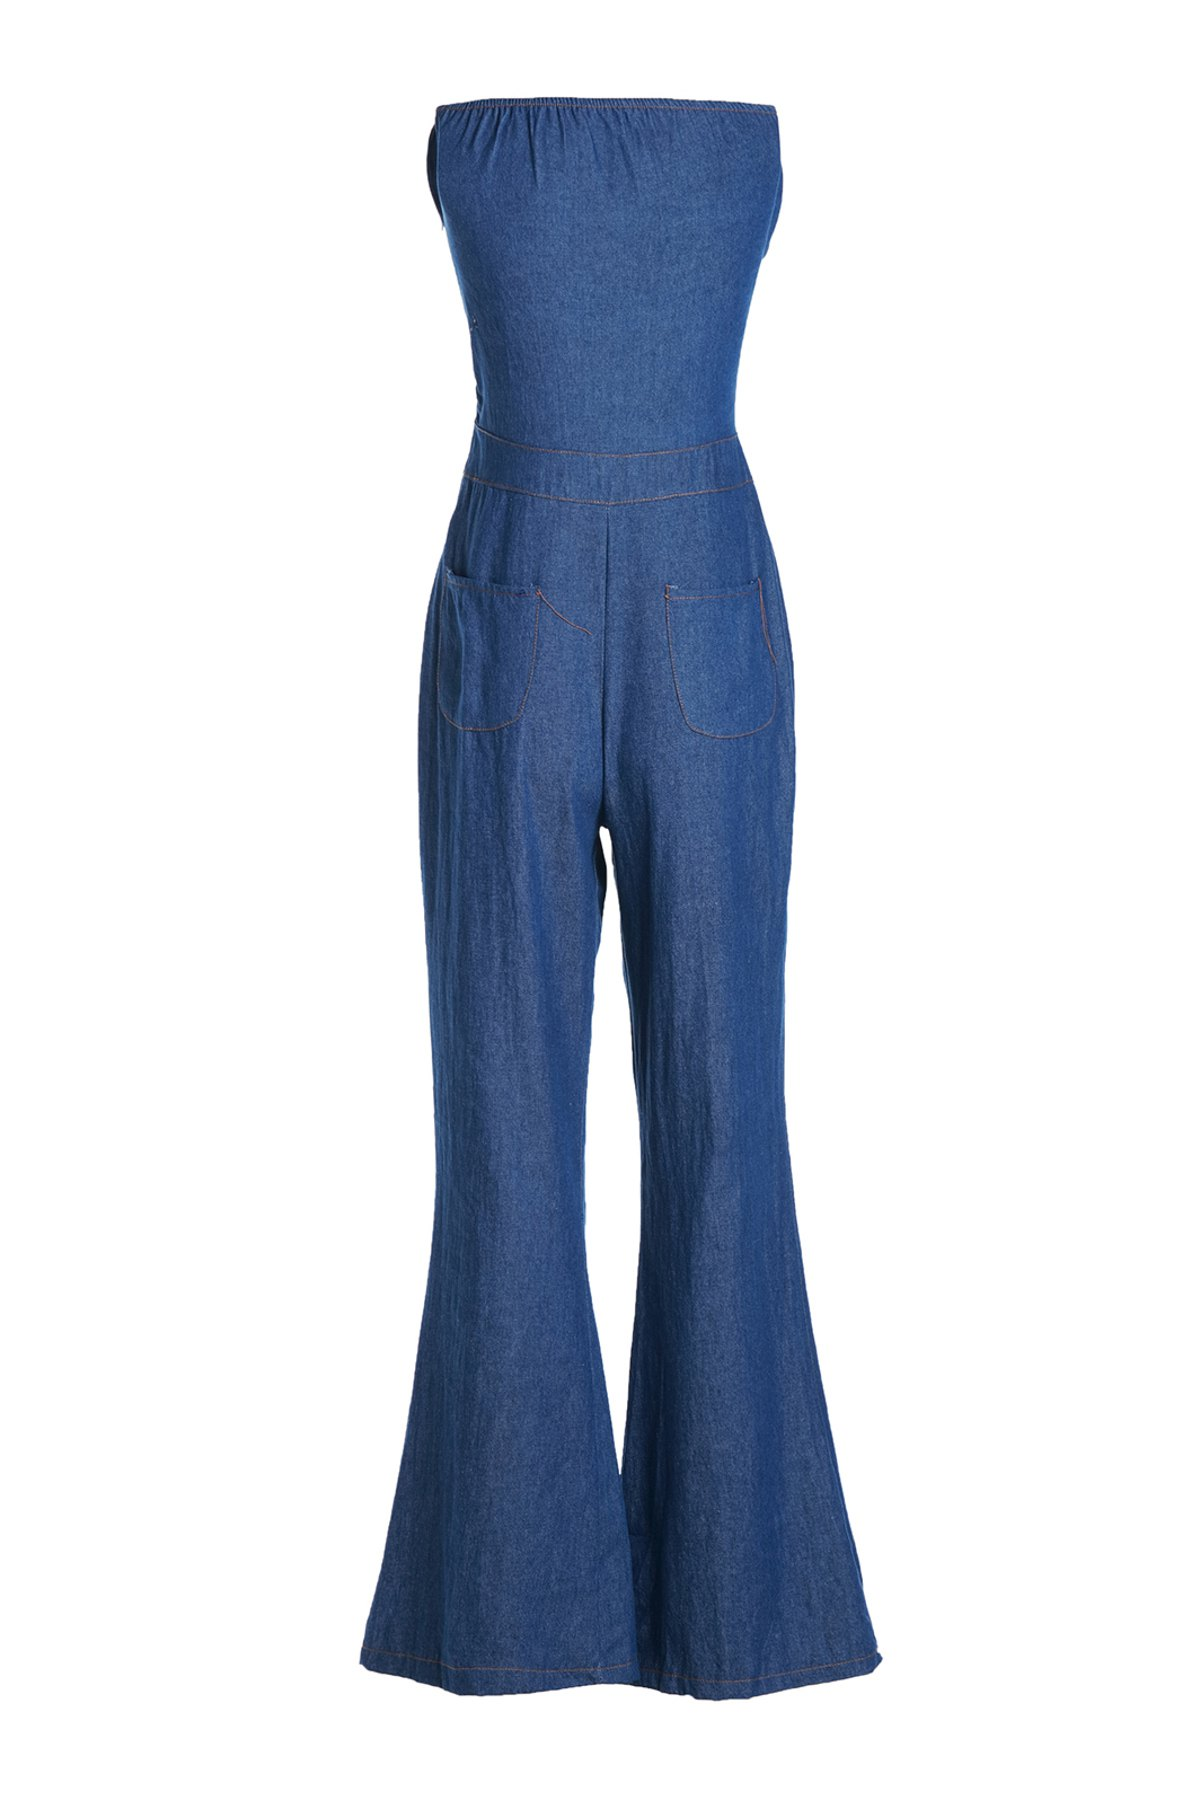 Casual Women's Strappy Denim Wide Leg Jumpsuit - DEEP BLUE S